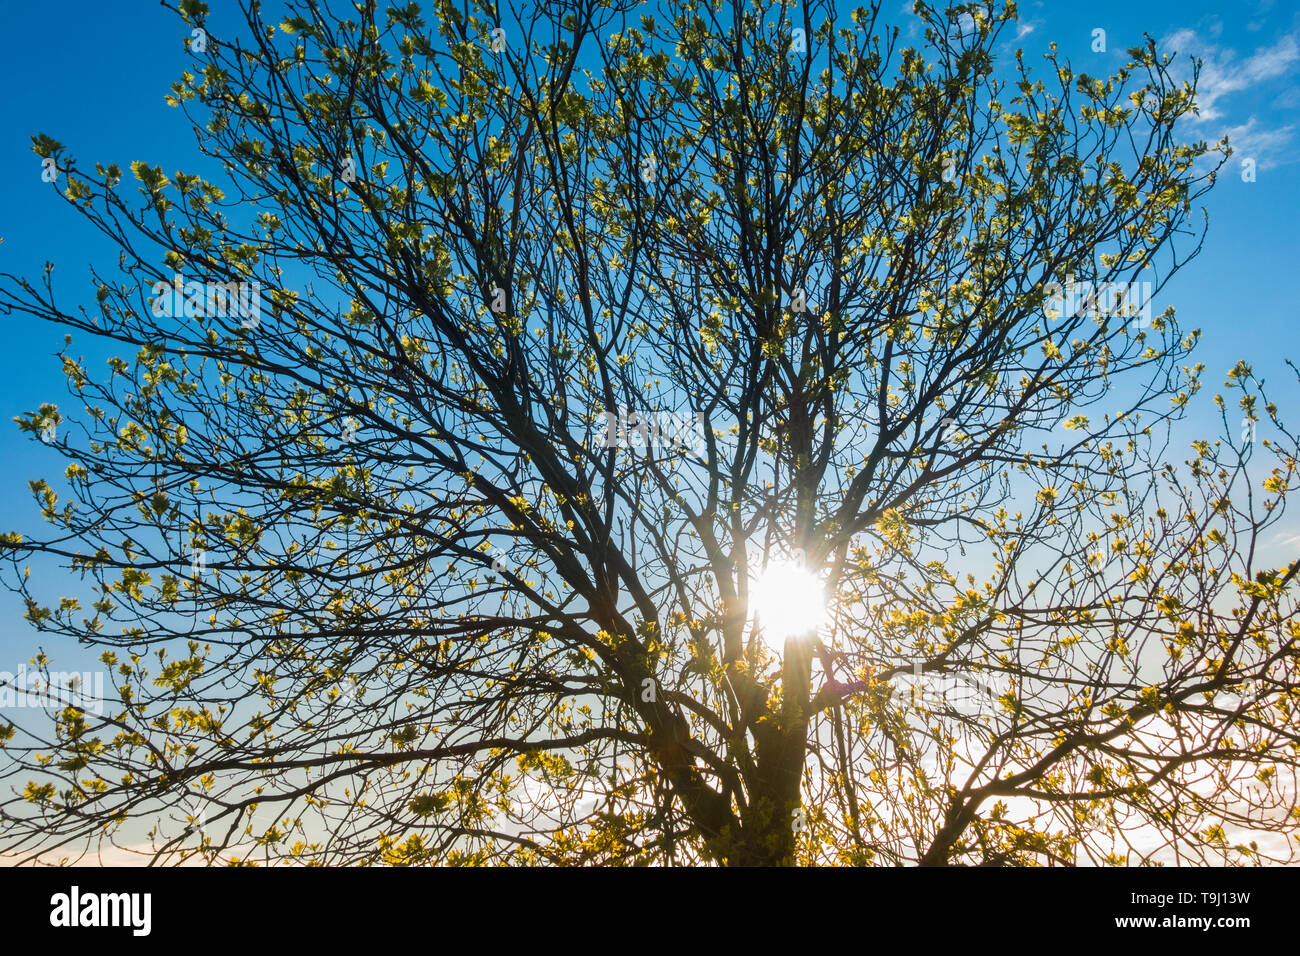 Seaton Carew, County Durham, UK. 19th May 2019. UK weather: early morning sun burns off a thin layer of cloud on a glorious Sunday morning at Seaton Carew on the north east coast of England. Credit: Alan Dawson/Alamy Live News Stock Photo